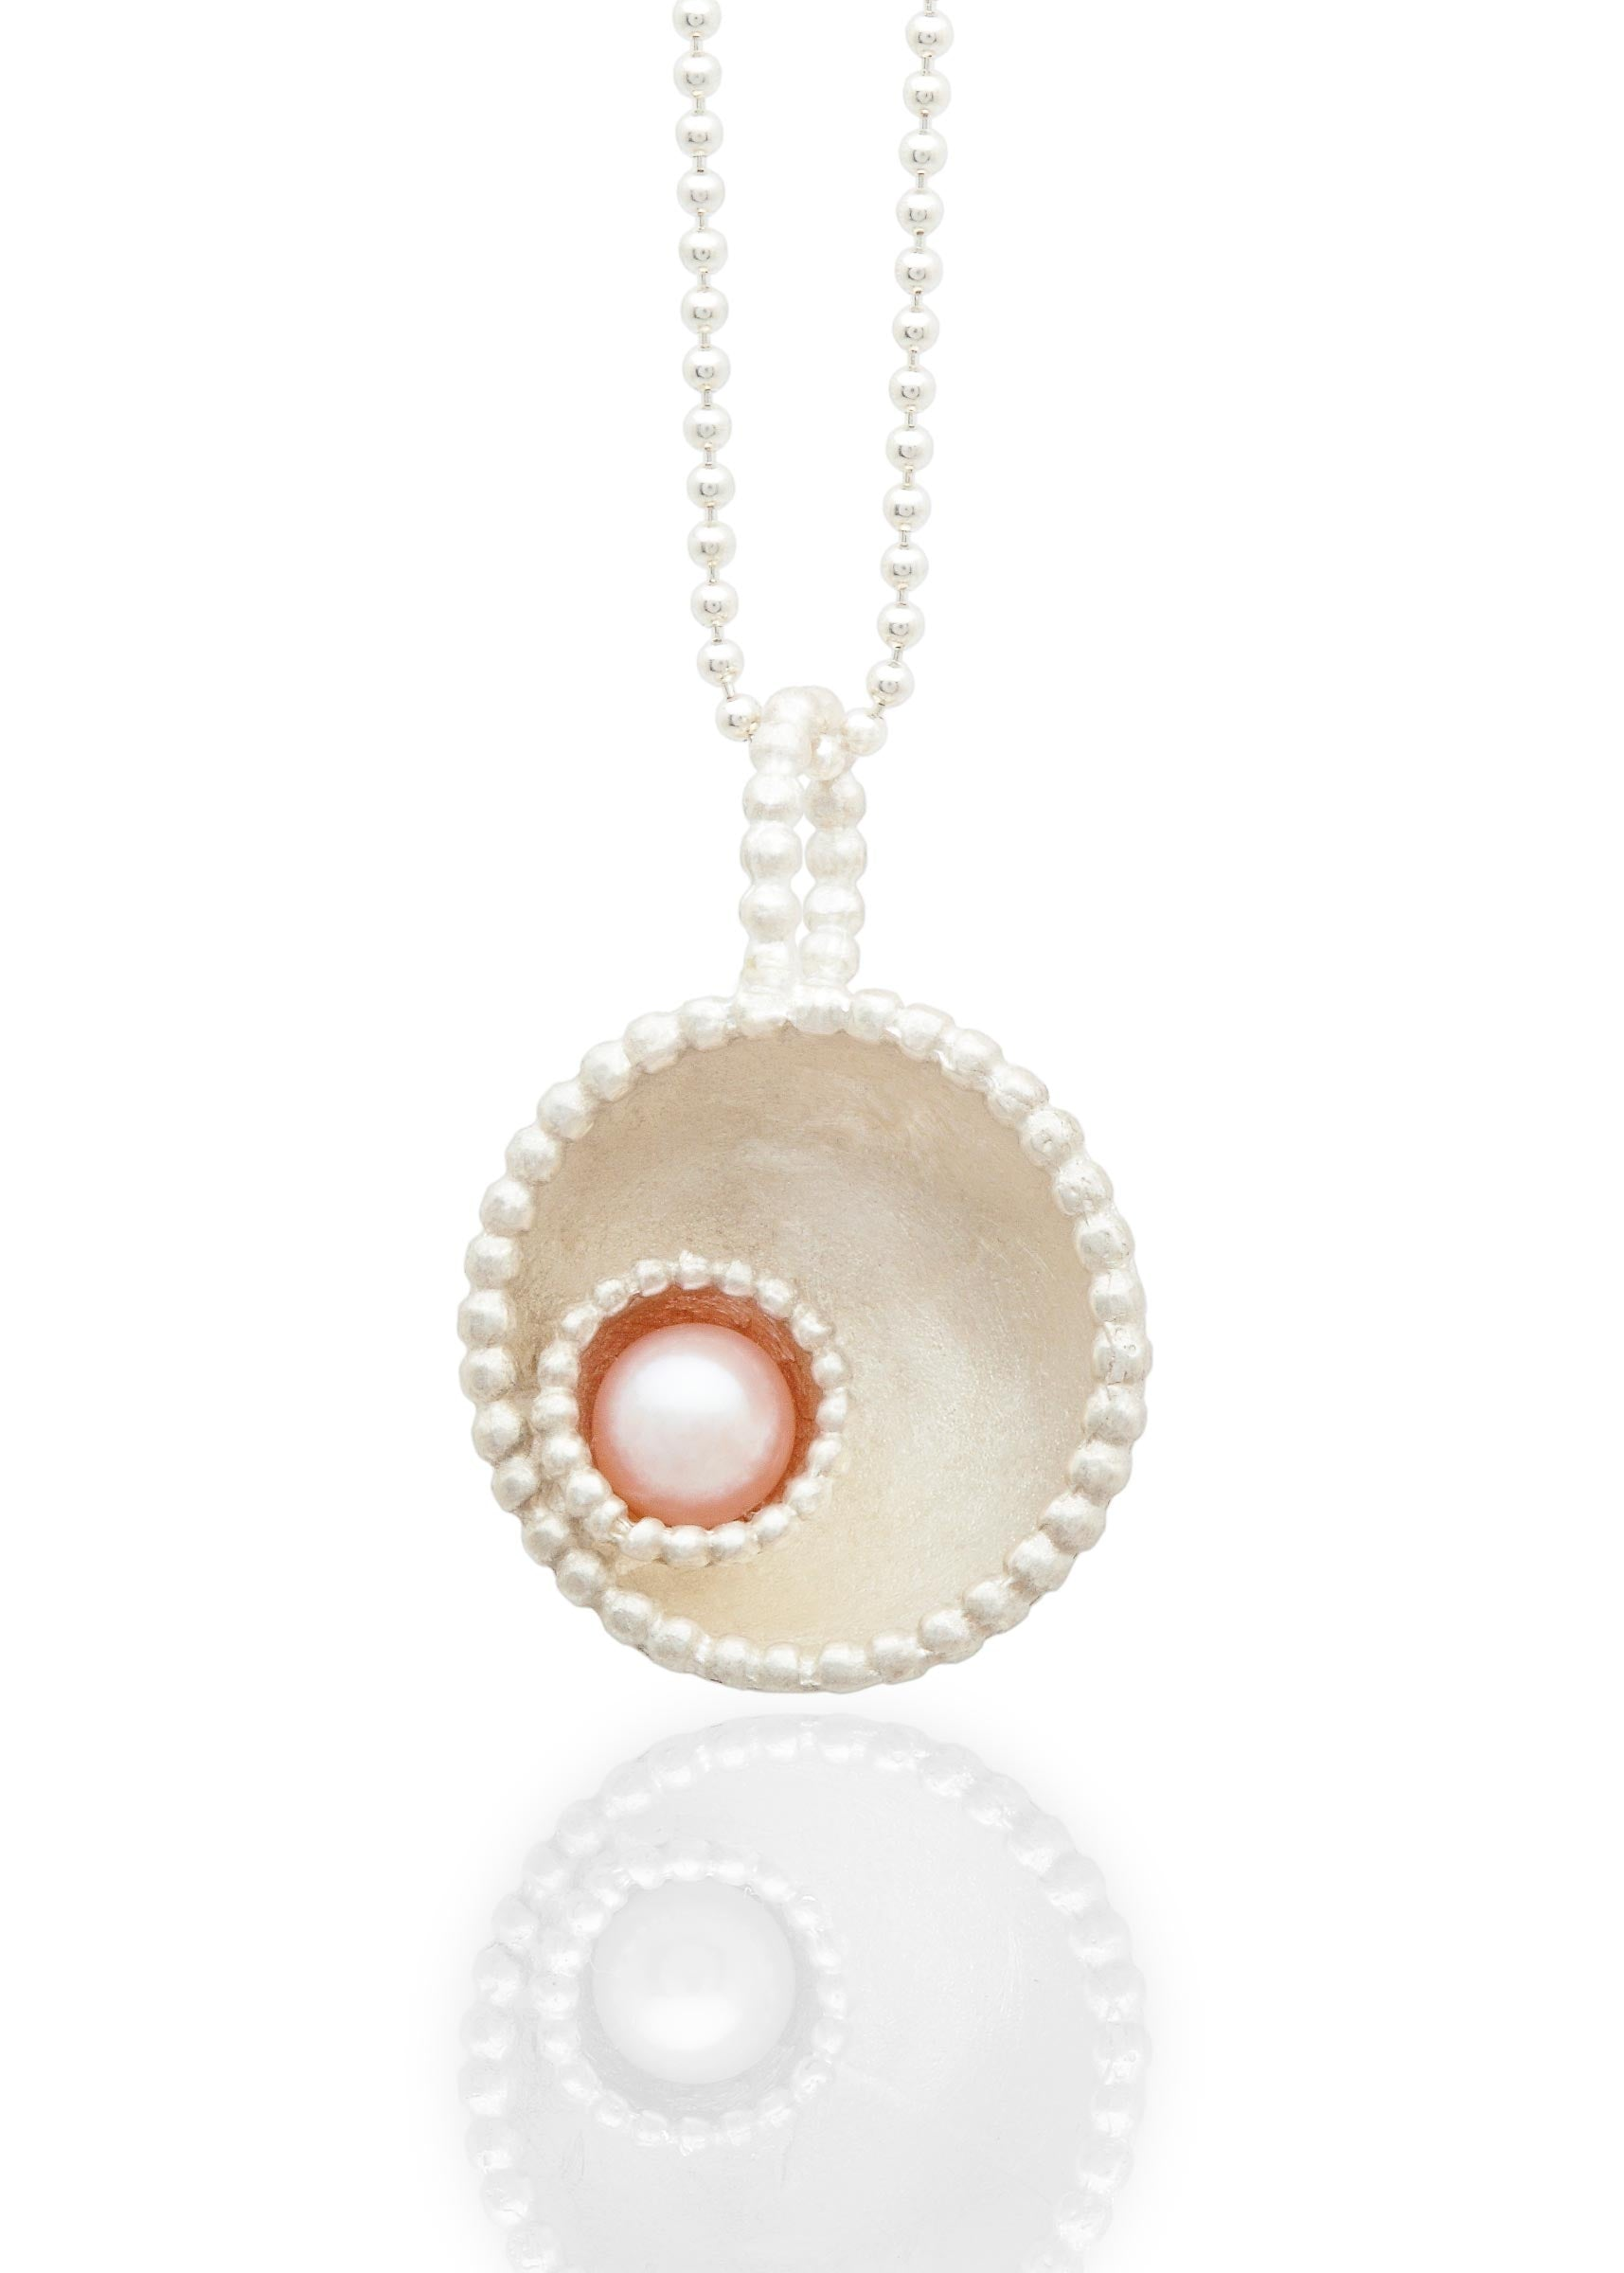 Byzantine dome pendant with pearl